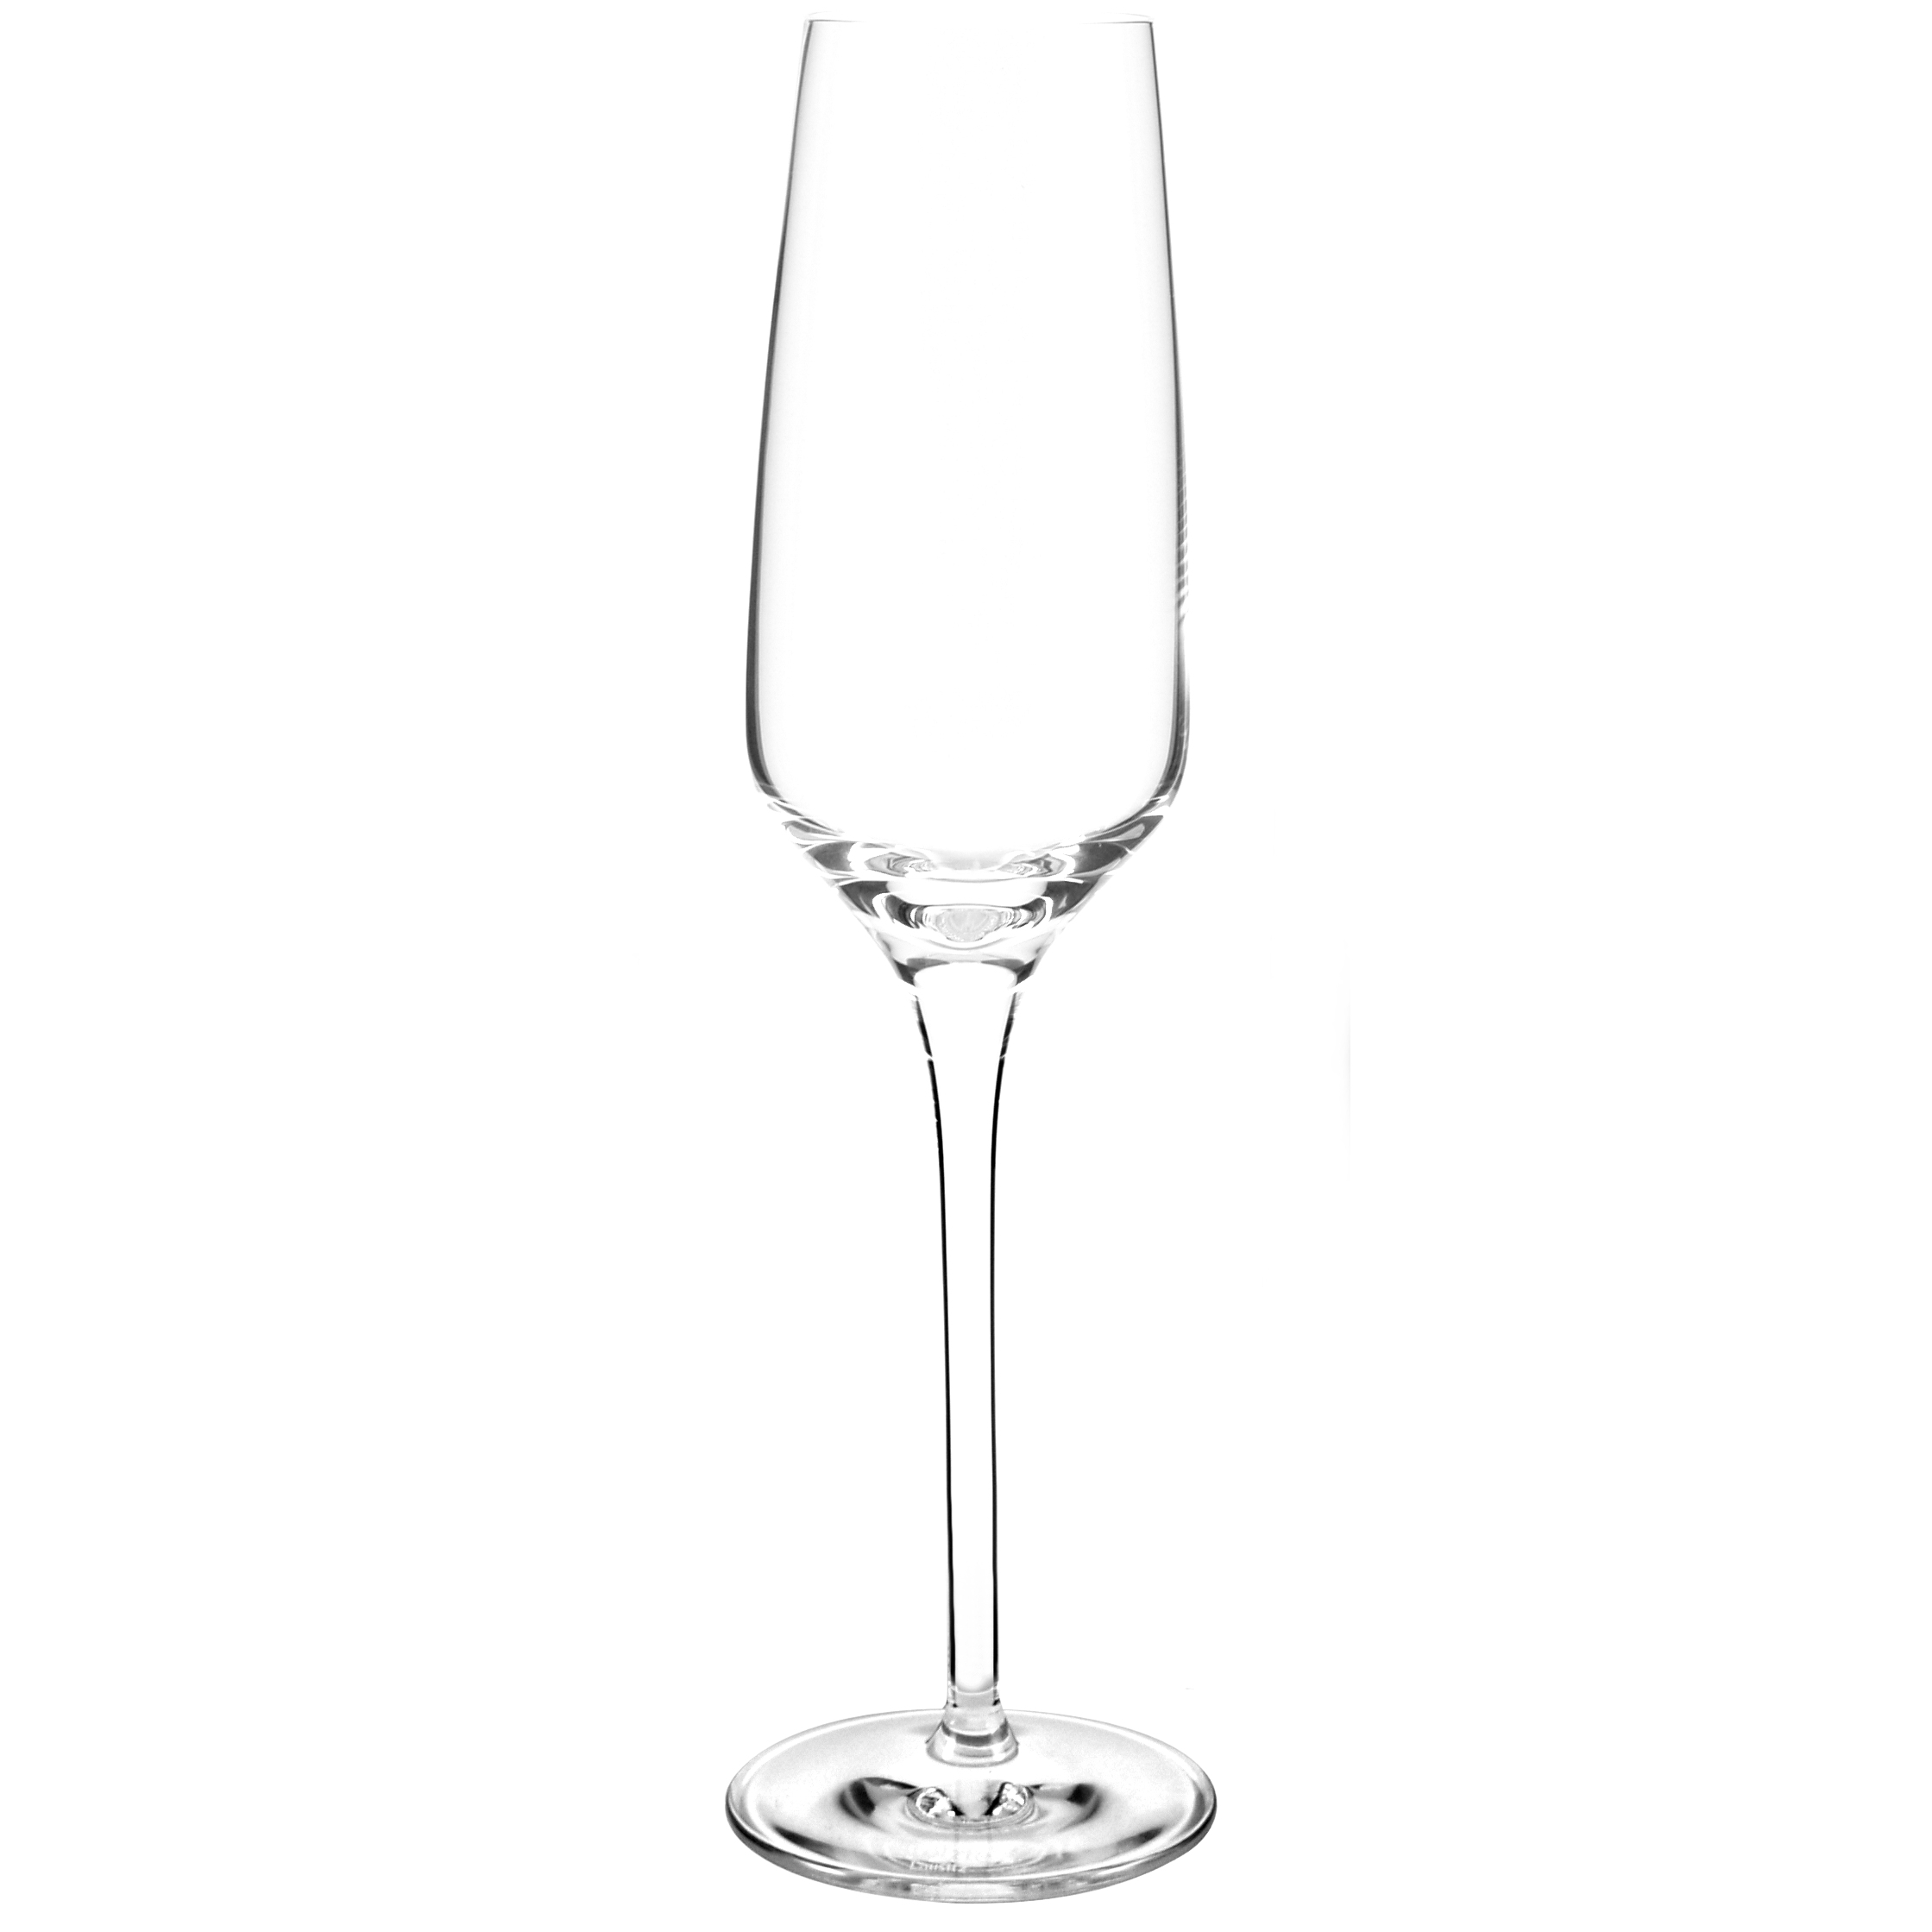 Stolzle Experience Crystal Champagne Flute, Set of 4